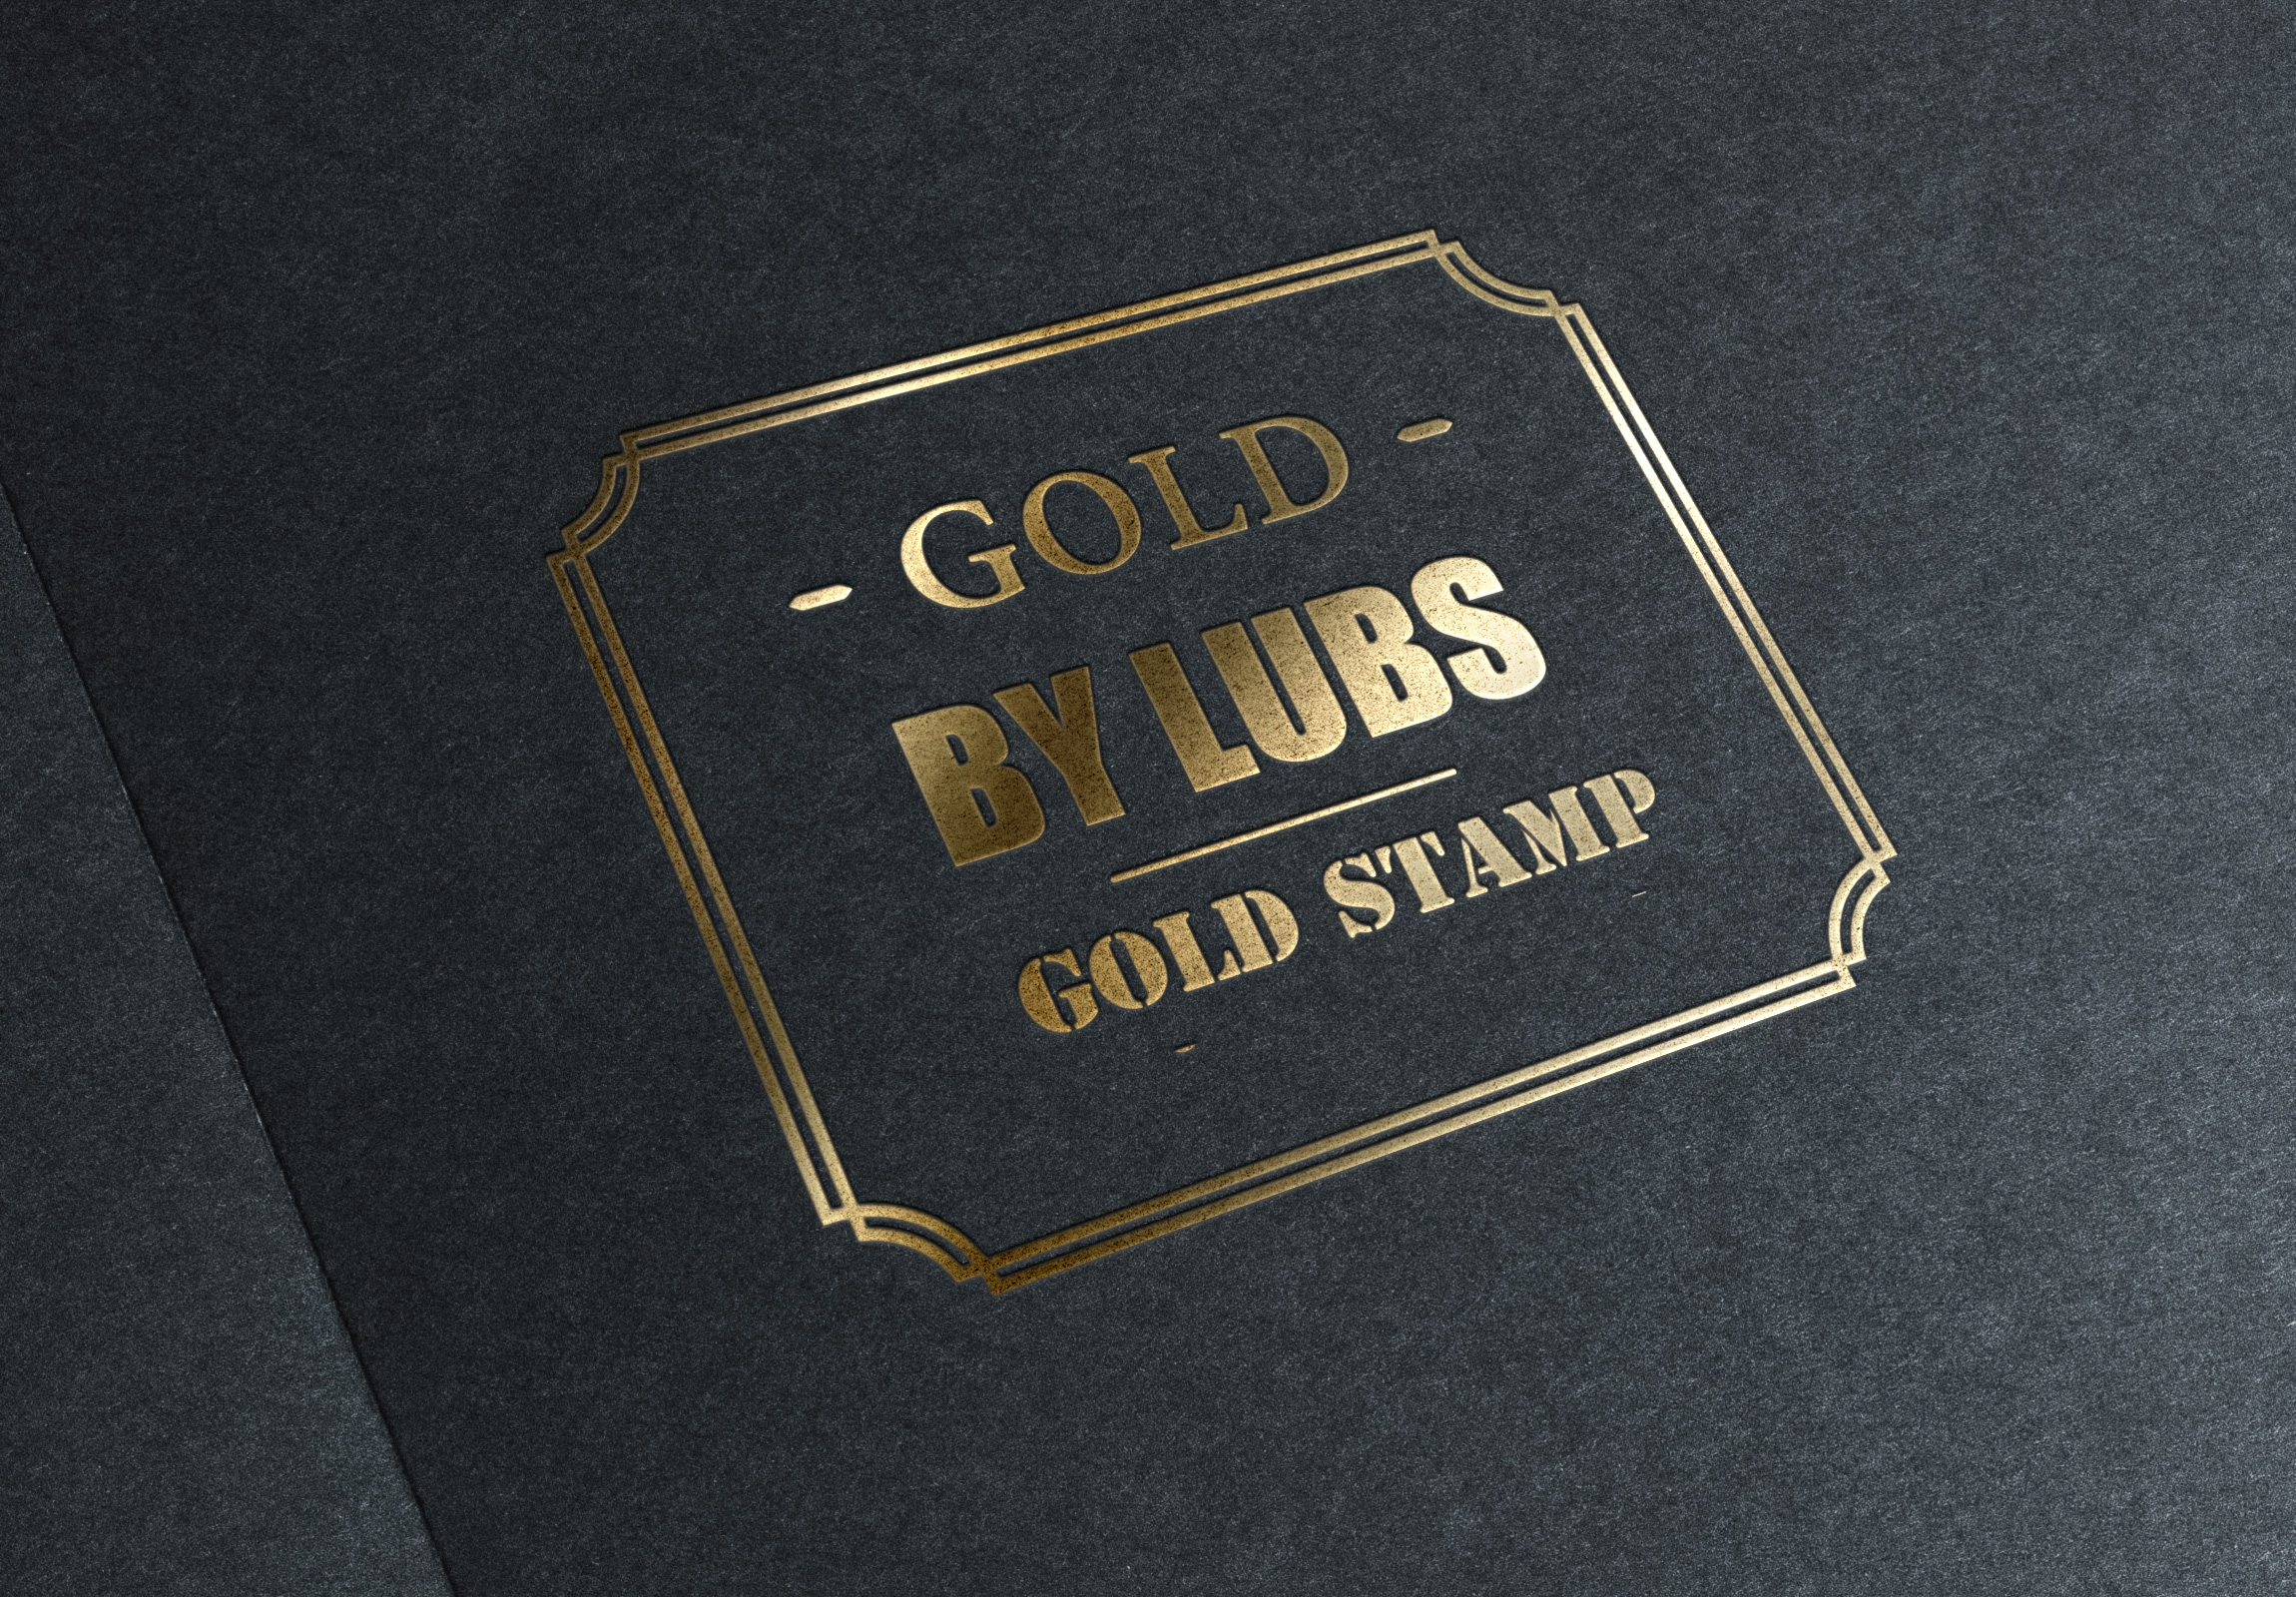 Convert your text/logo into Gold stamping just